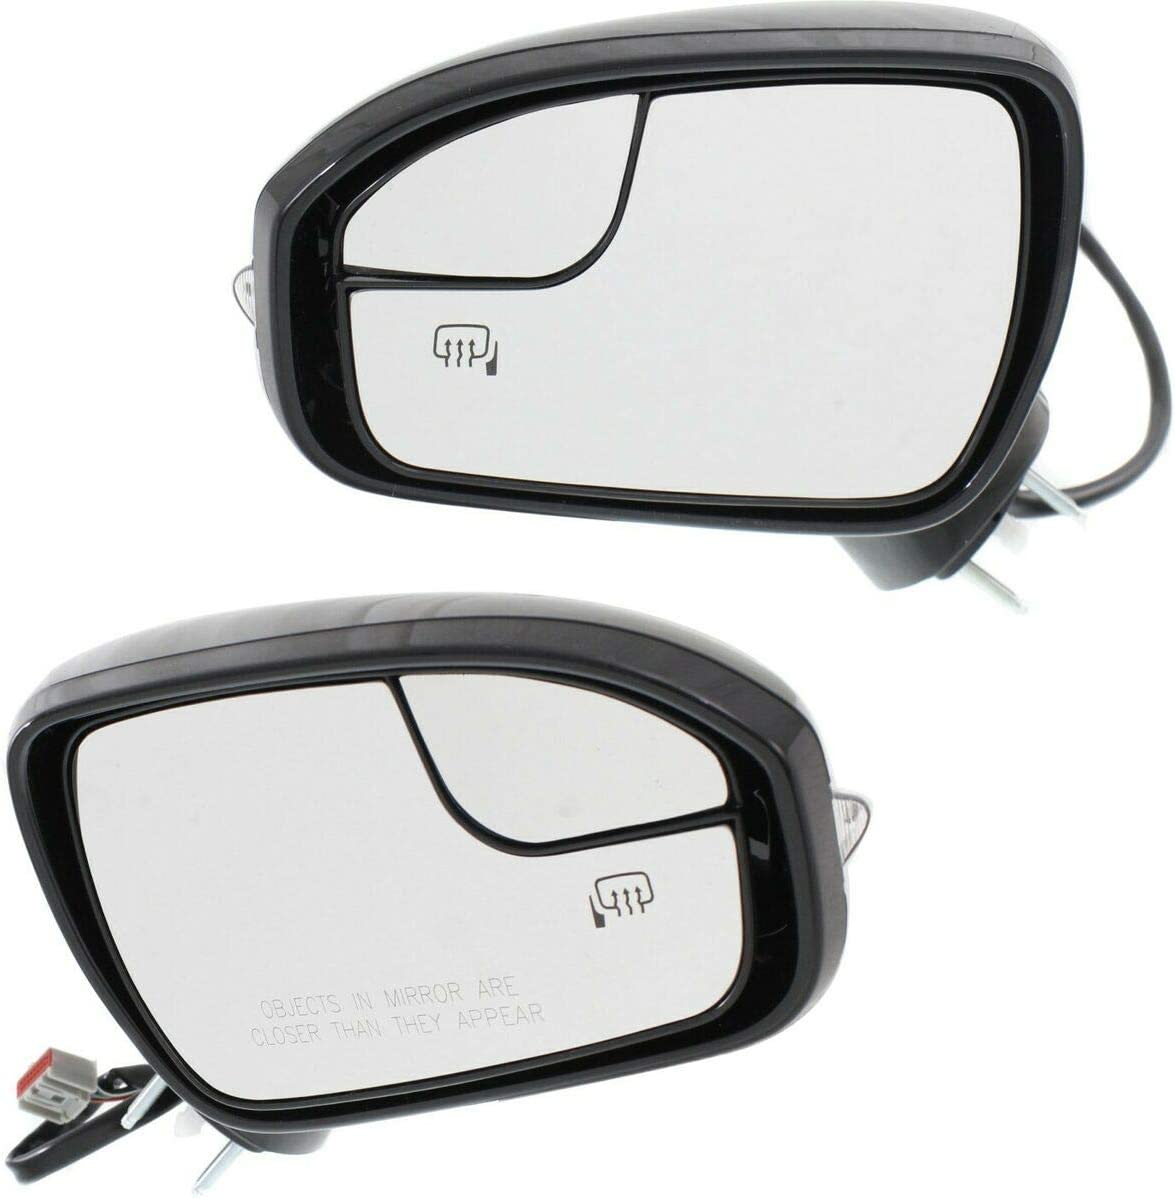 Credence Set of Daily bargain sale 2 Mirrors Driver Passenger Heated LH Side Compatible RH